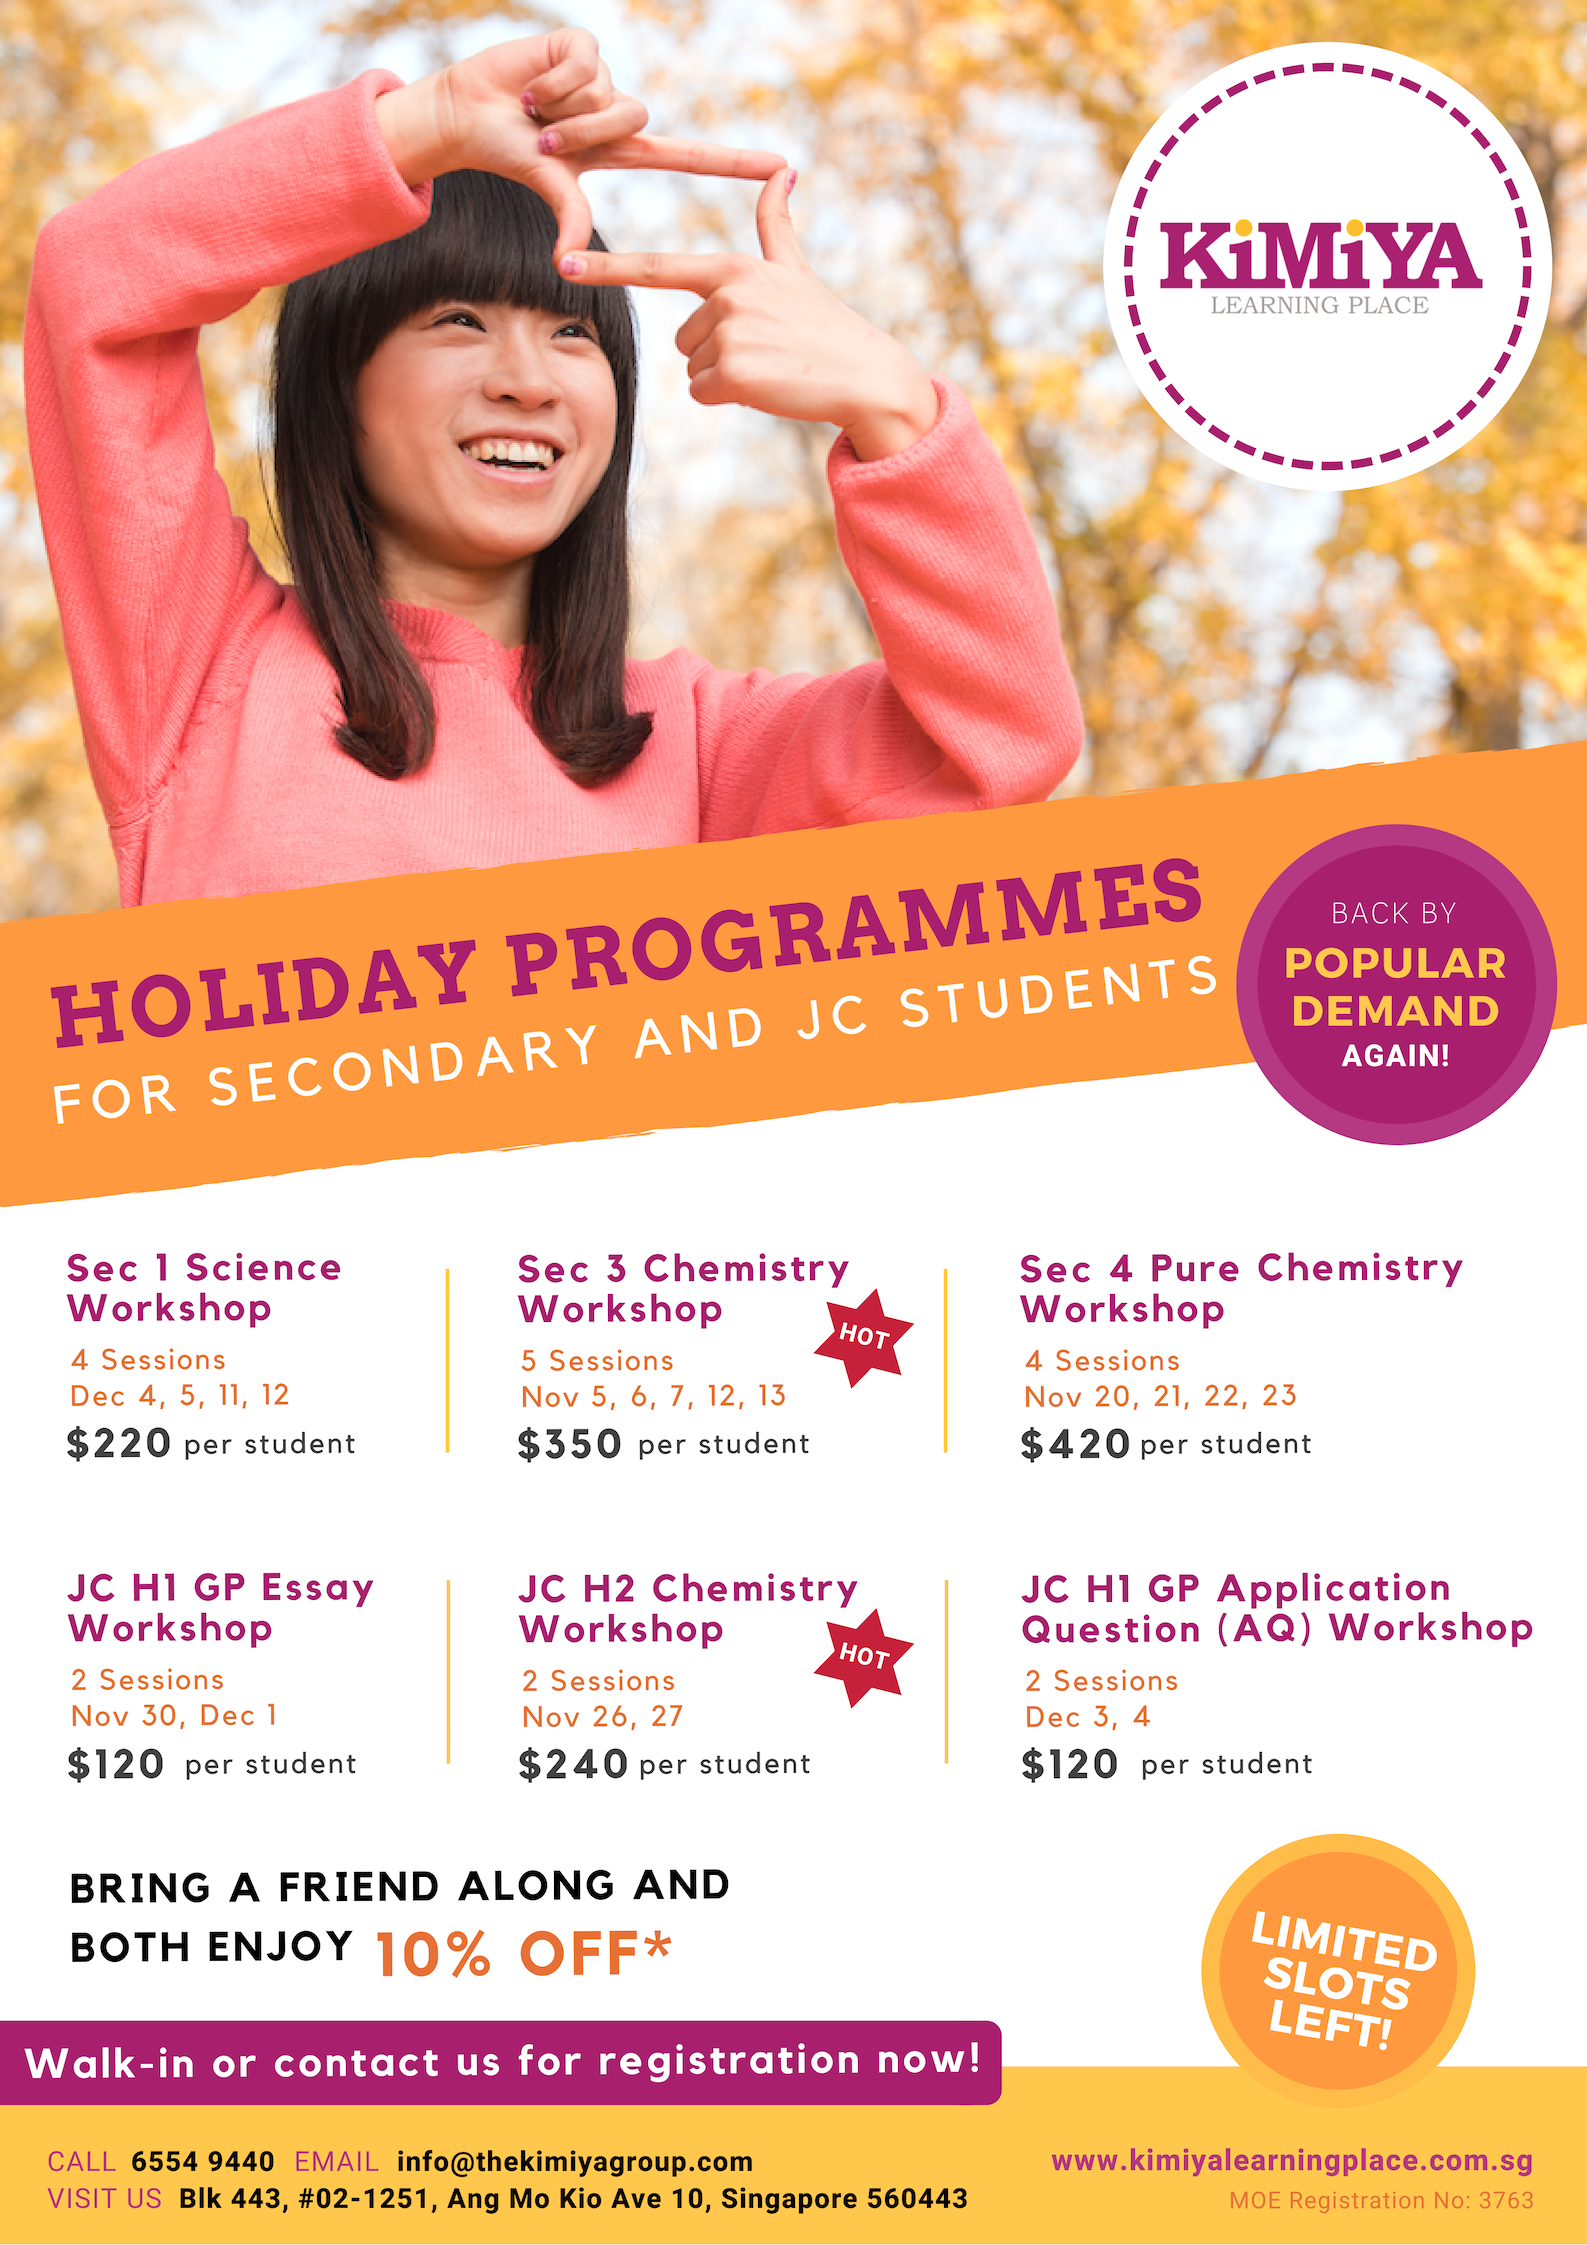 2018 Year End Holiday Programmes For Secondary and JC Students